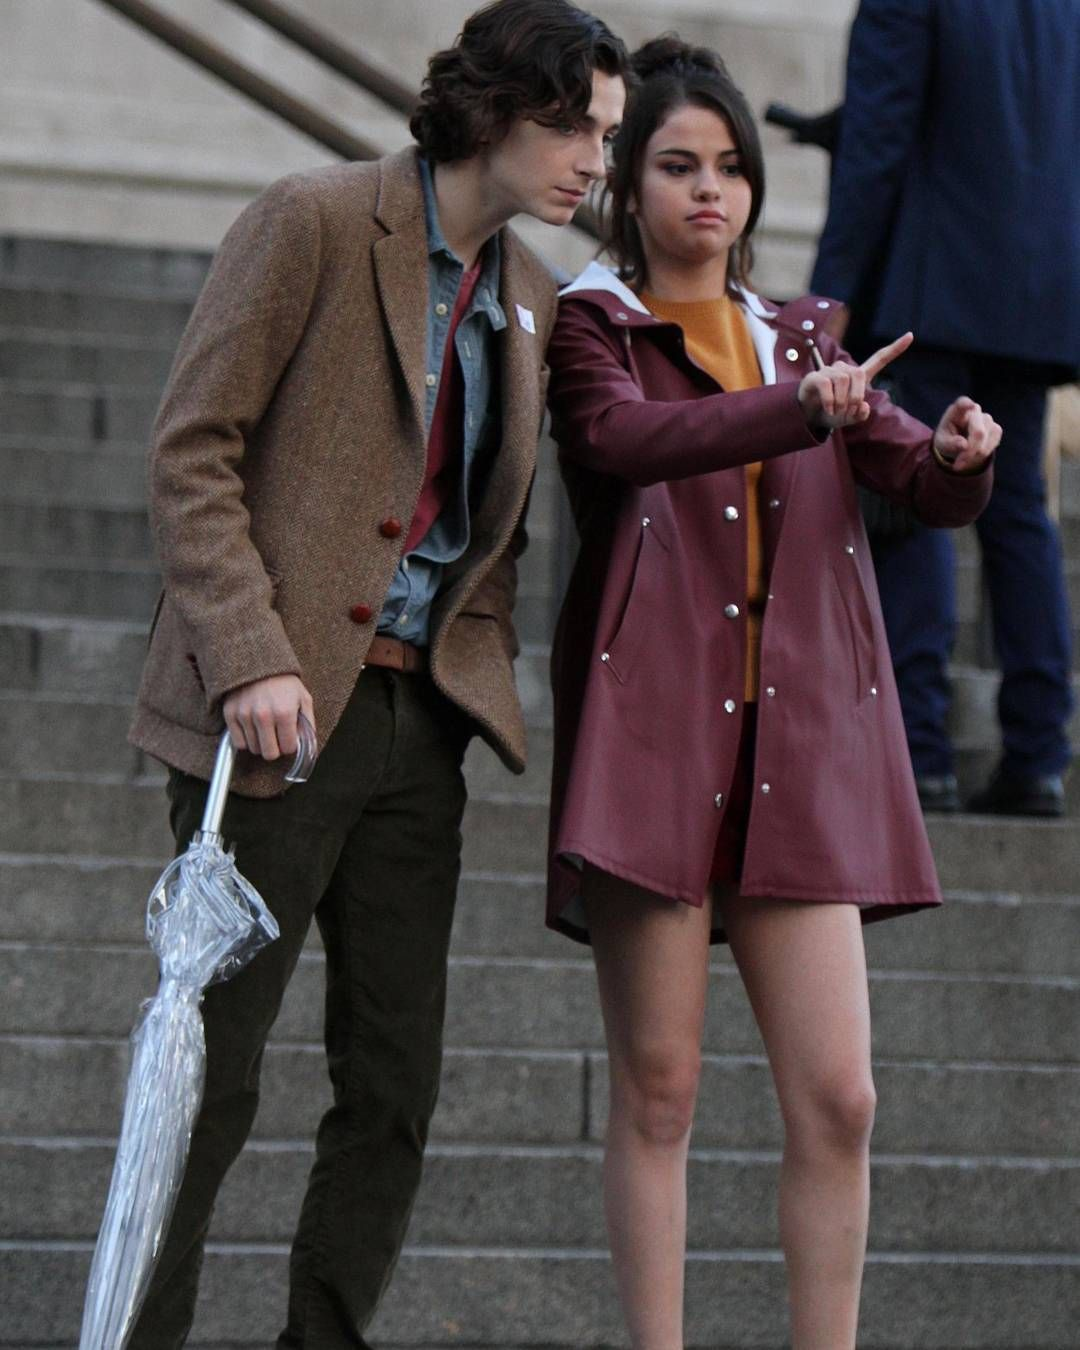 selenagomez with Timothee Chalamet on the set of her new